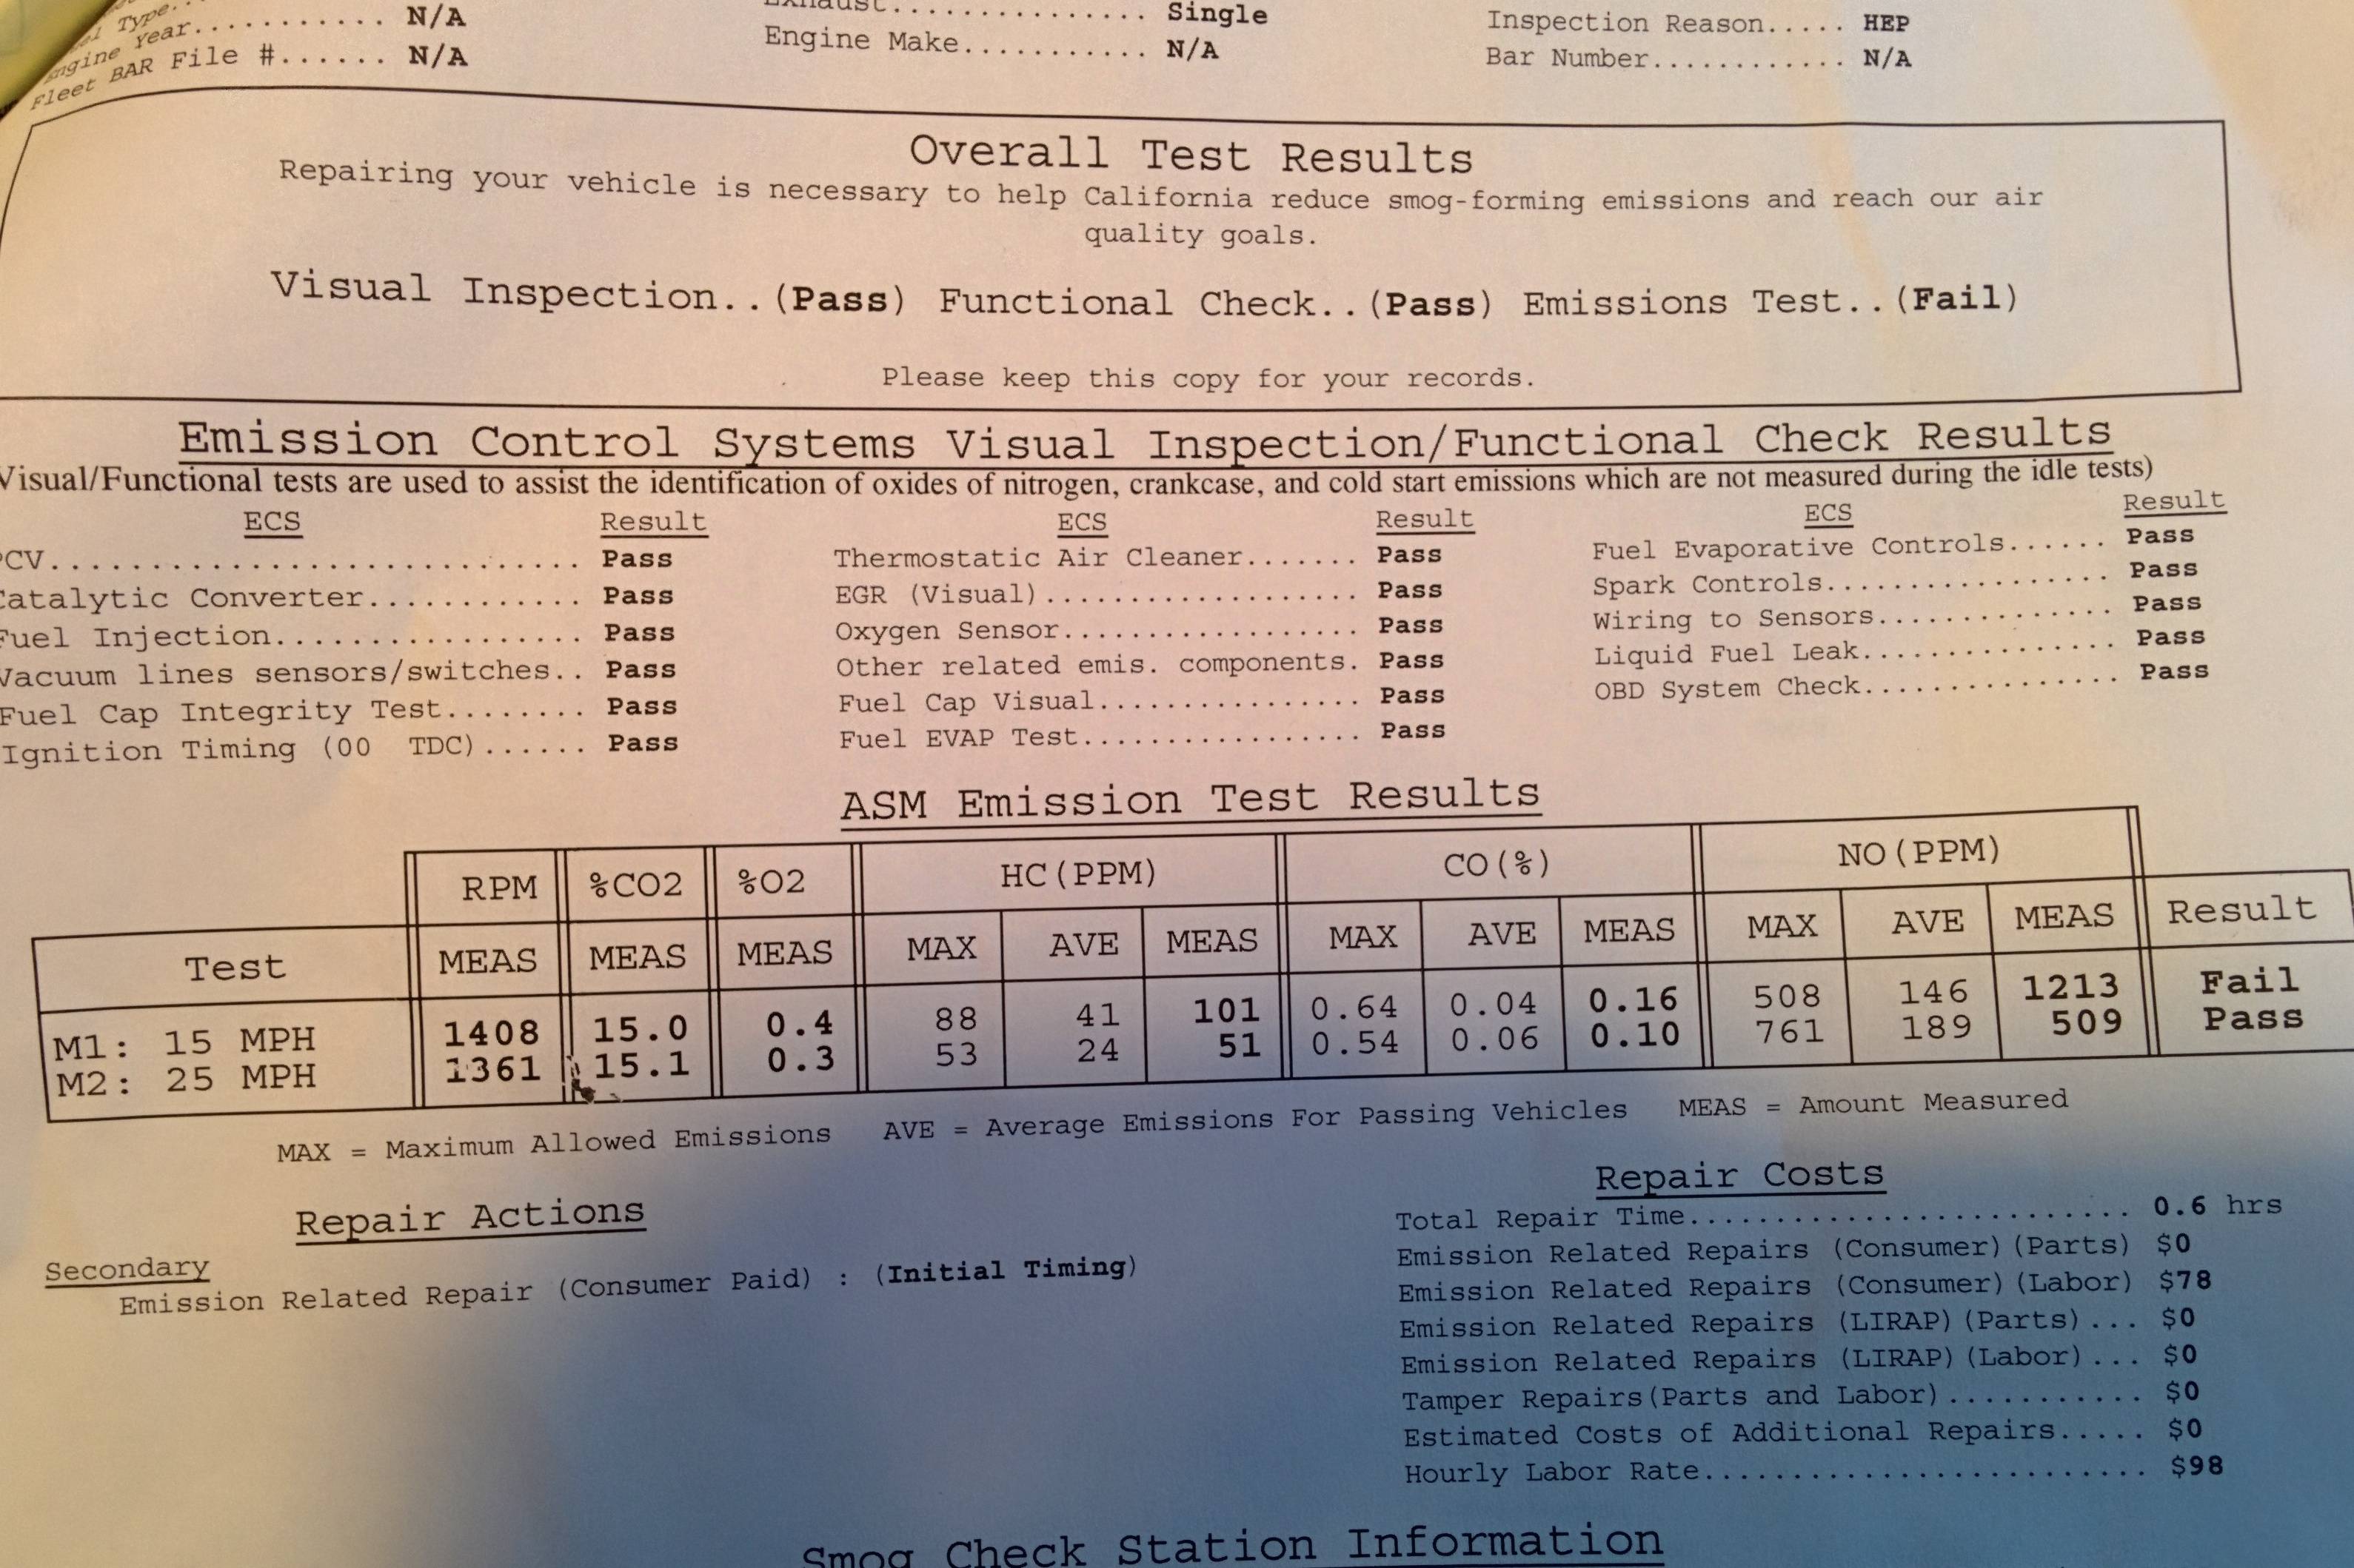 '94 Chevy Astro Smog Results